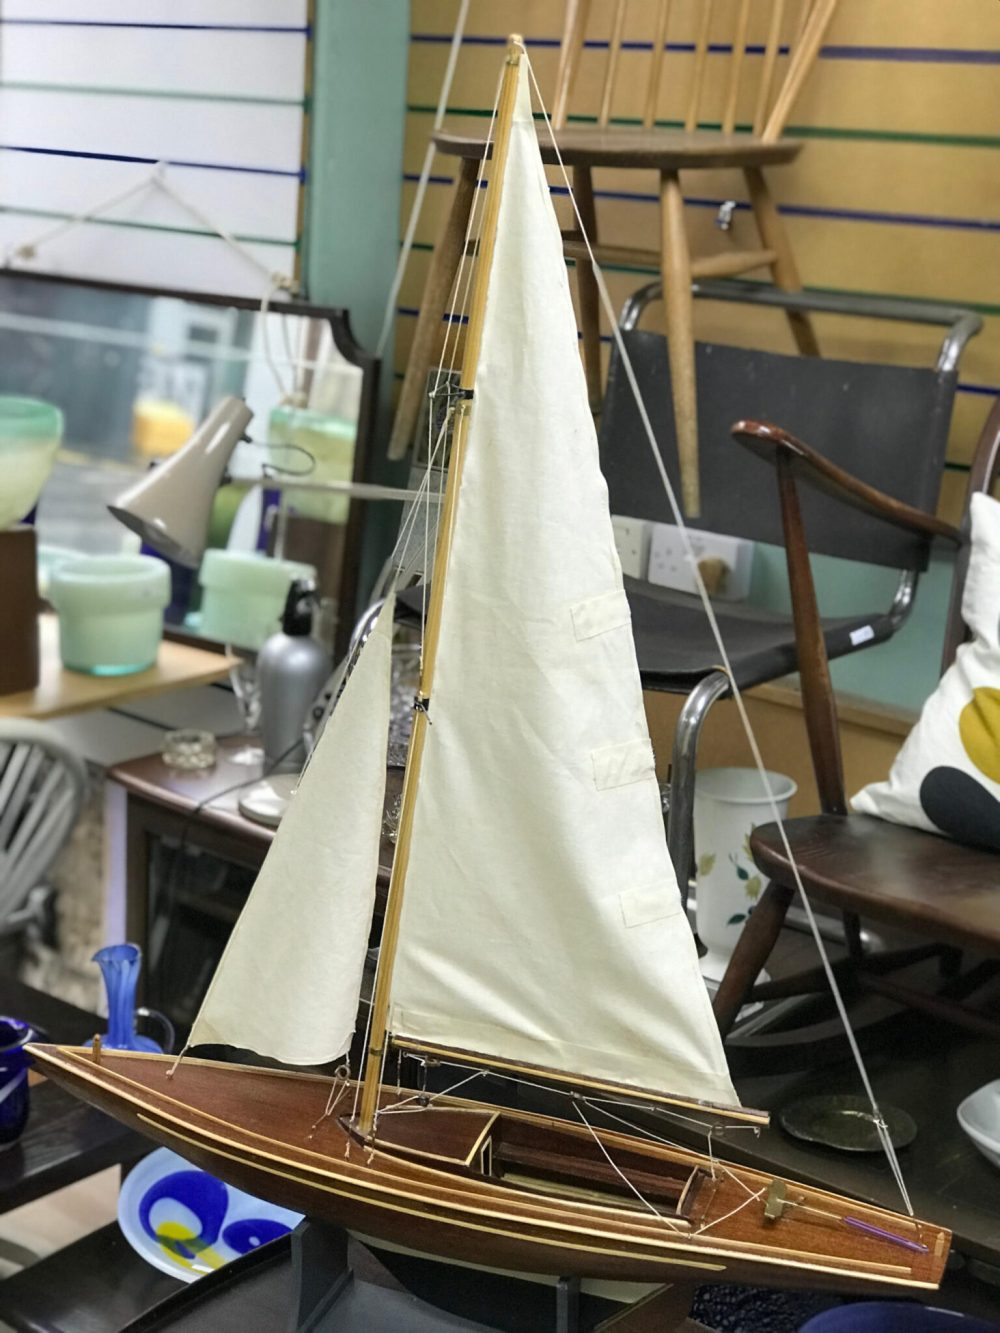 Dragon Class racing yacht model